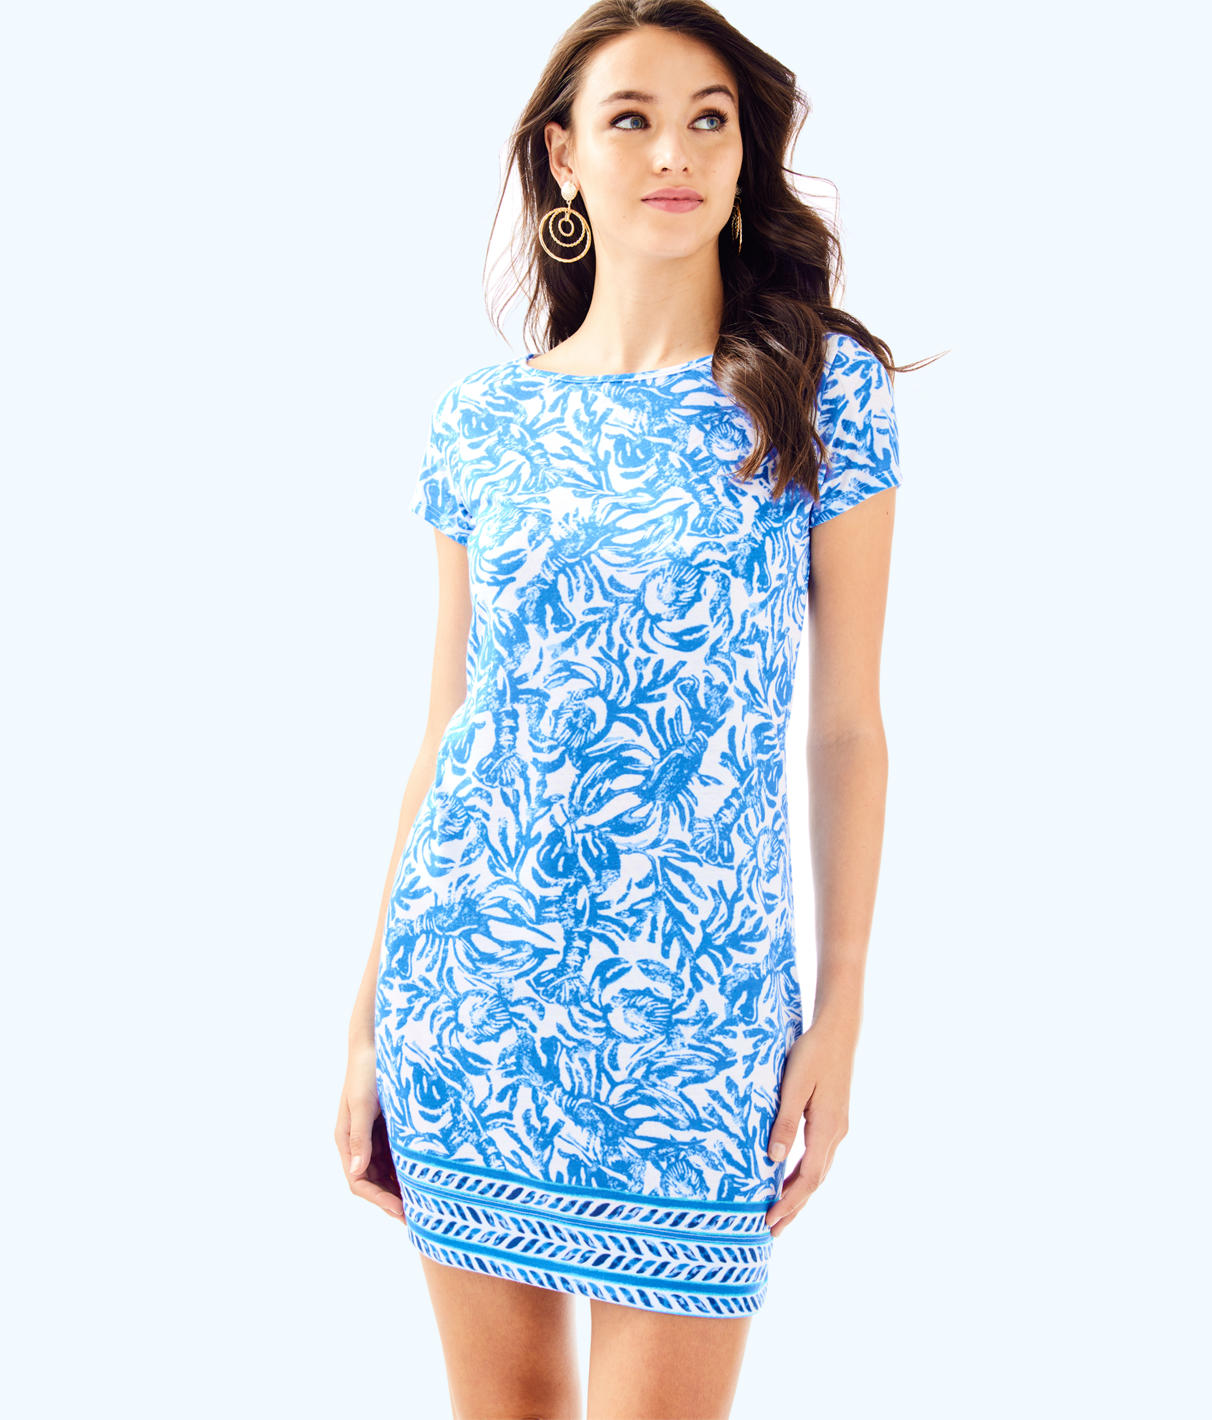 Lilly Pulitzer Lilly Pulitzer Womens Short Sleeve Marlowe Dress